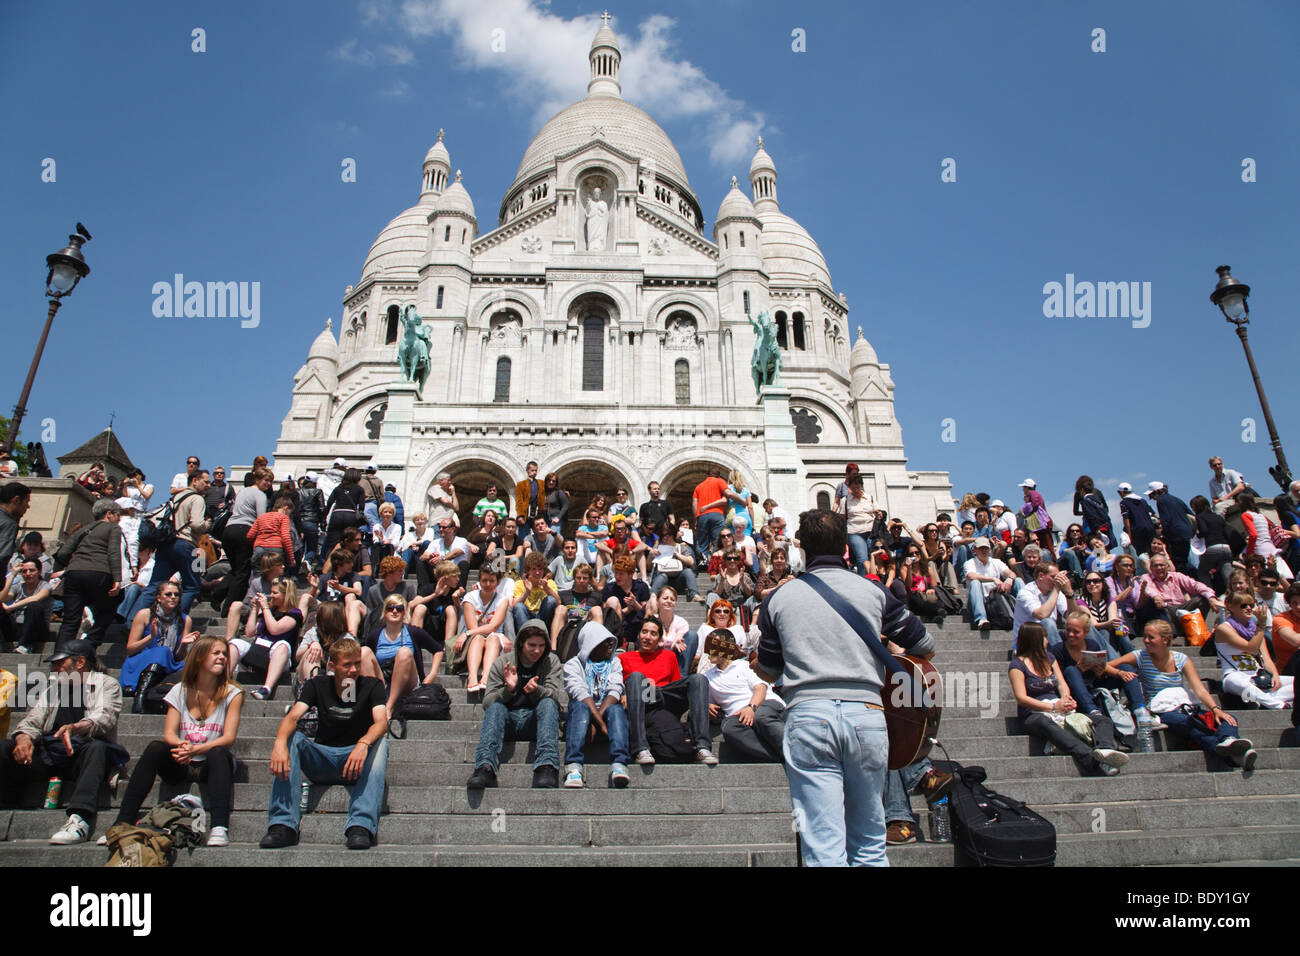 Tourists listen to a street entertainer on the steps before Sacre Coeur, Paris, France Stock Photo